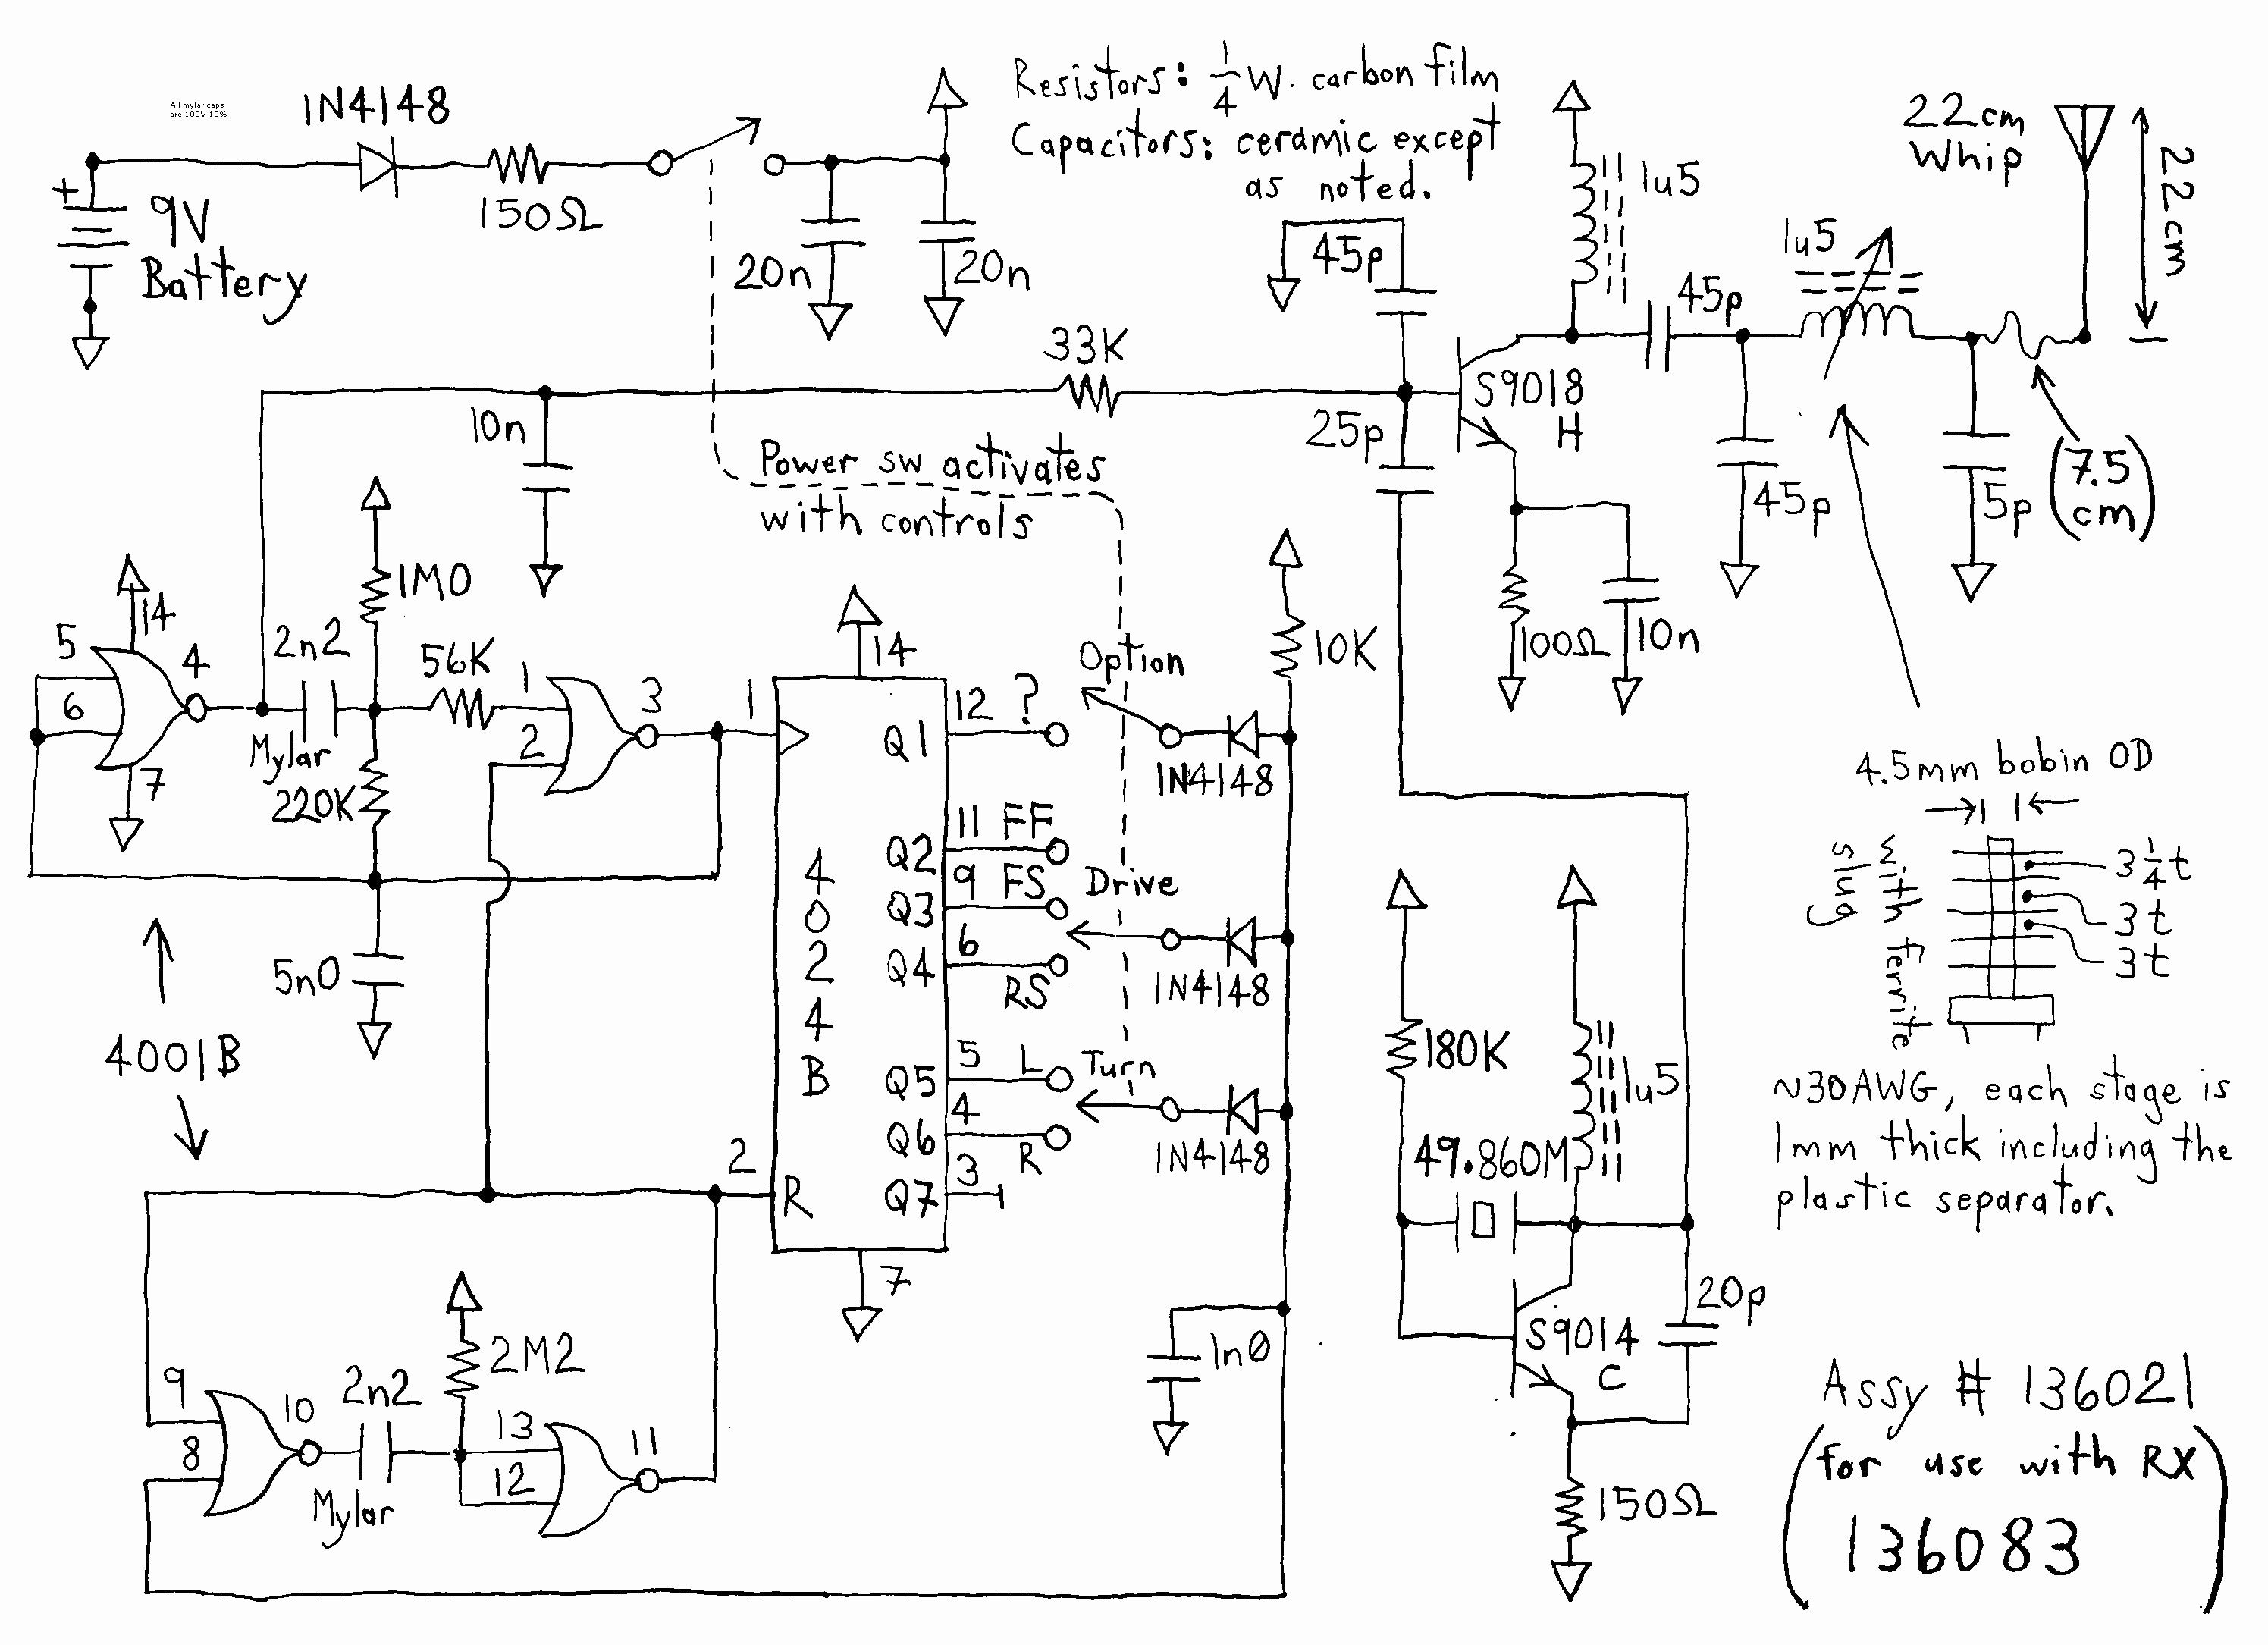 Trailer Wiring Diagram 5 Core South Africa | Wiring Diagram - 5 Core Trailer Wiring Diagram South Africa